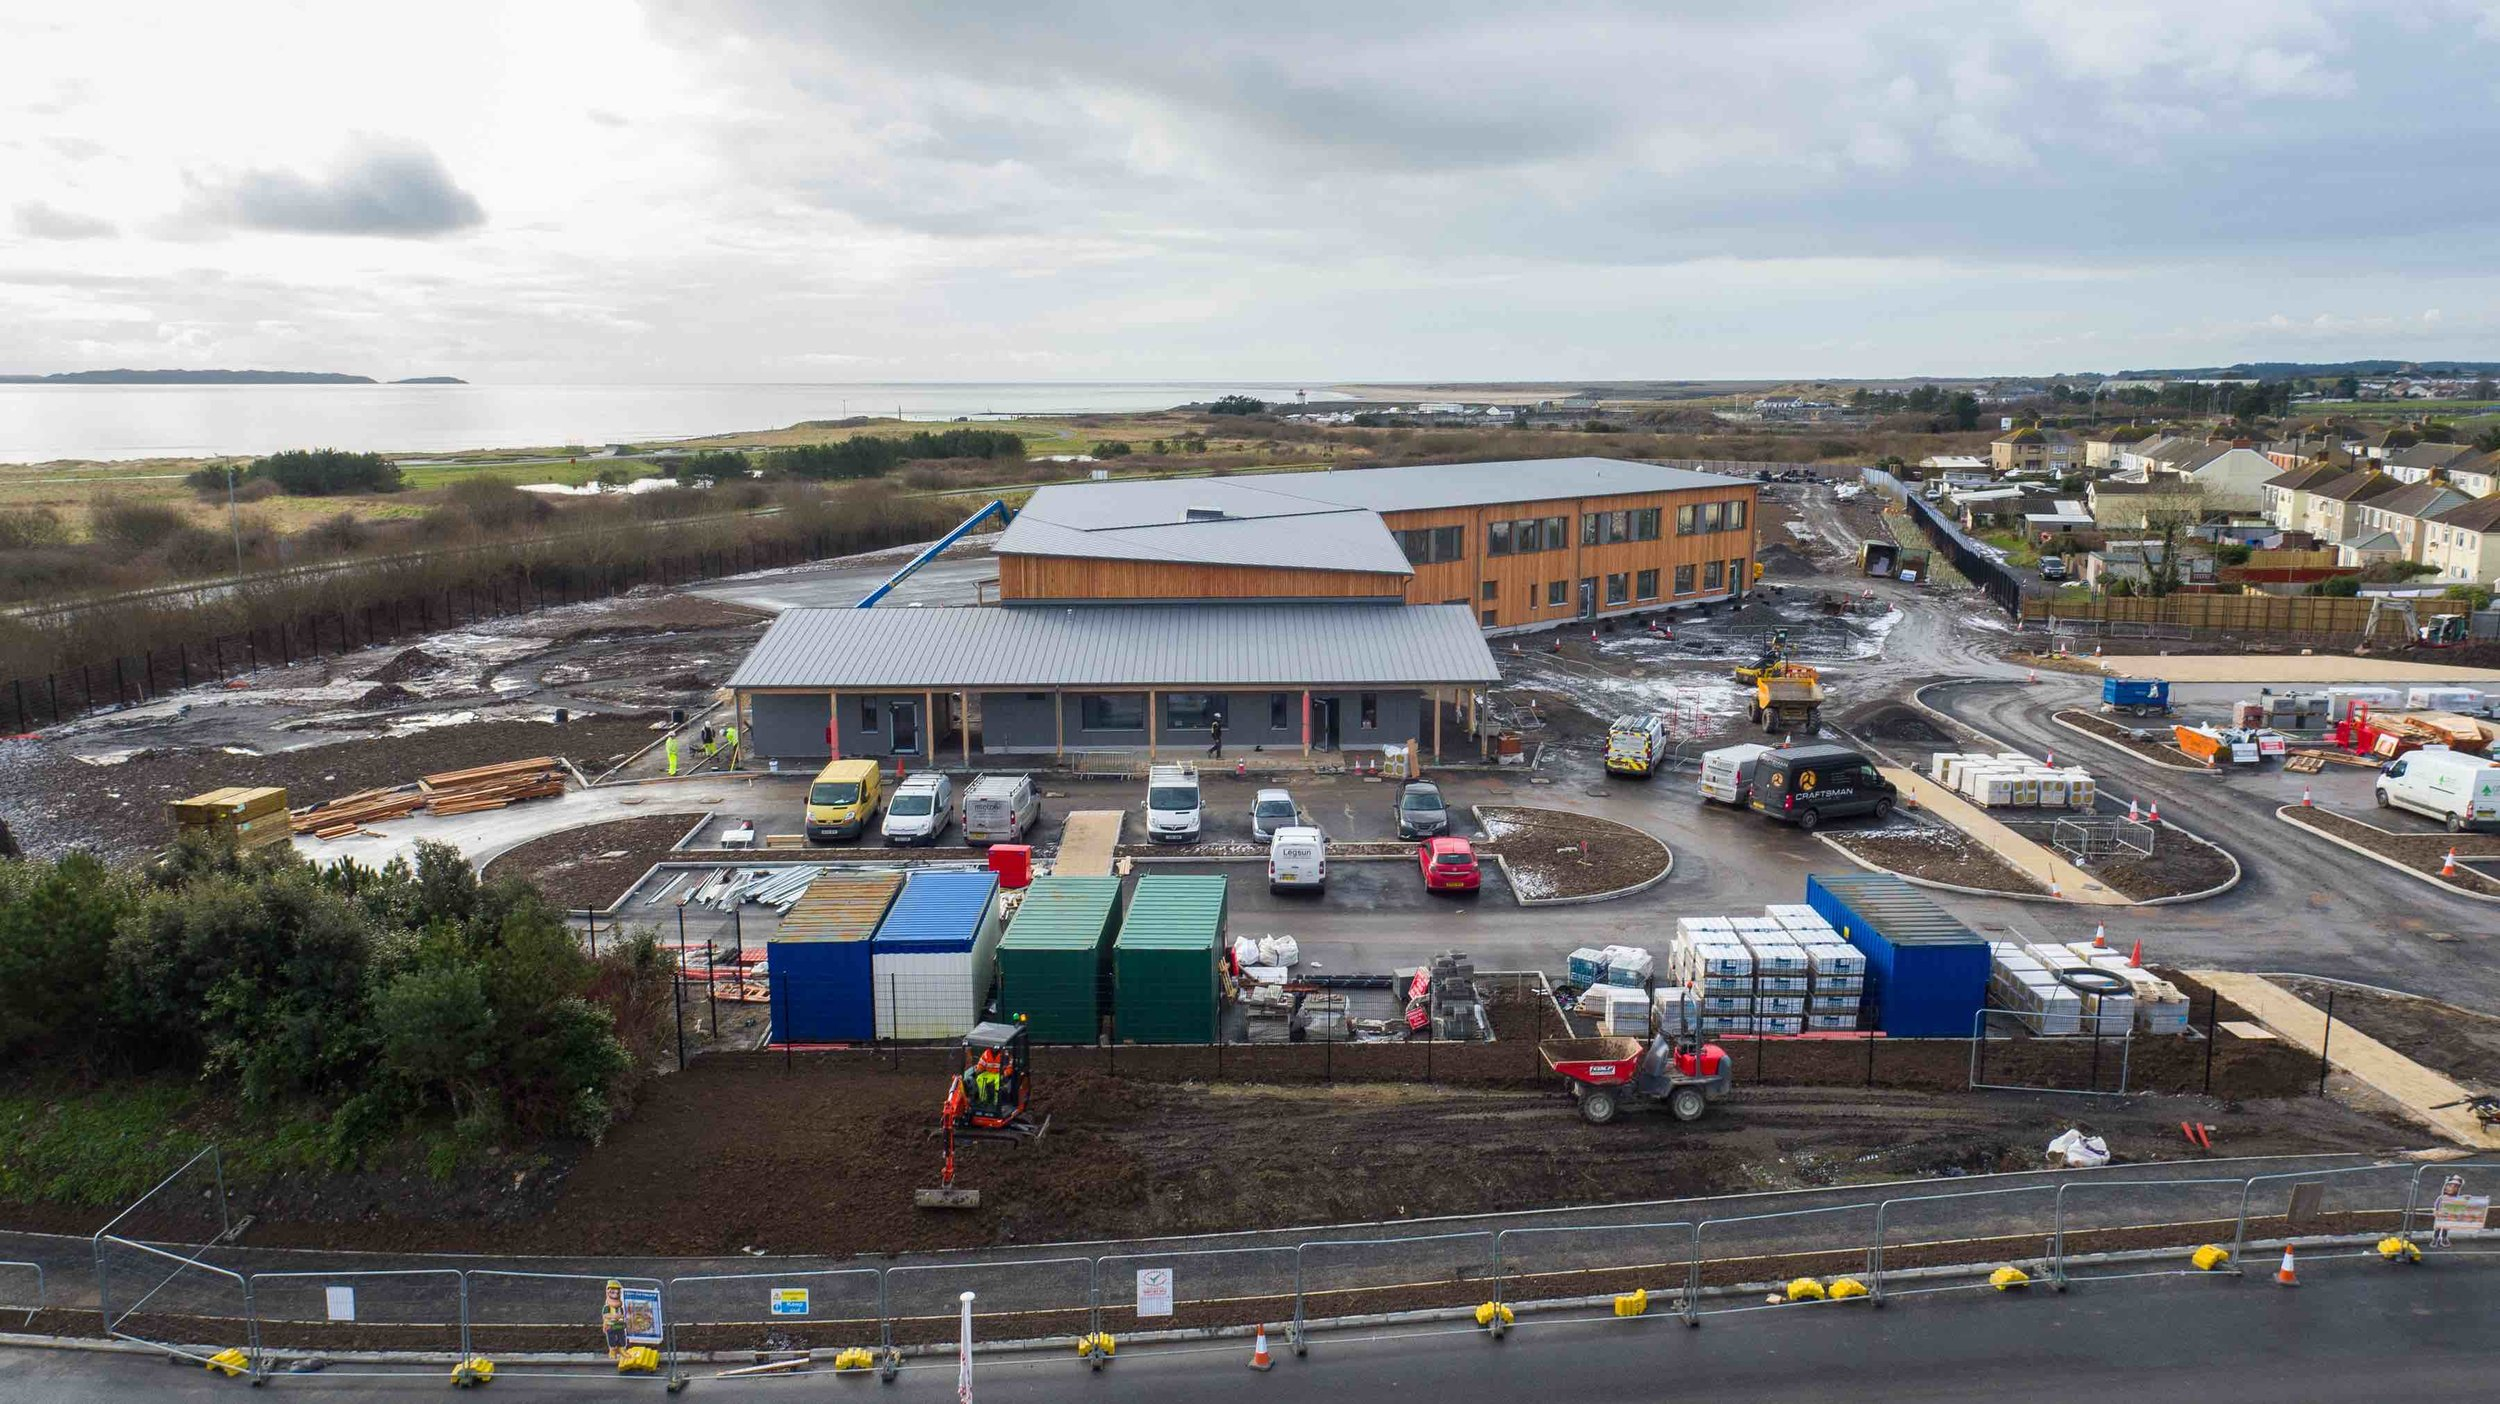 A school with a view - Almost completed,Ysgol Parc y Tywyn is situated on the former site of Carmarthen Bay Powerstation, a brownfield site, which runs alongside the Millennium Coastal Path, boasting beautiful sea views across the Loughor Estuary.